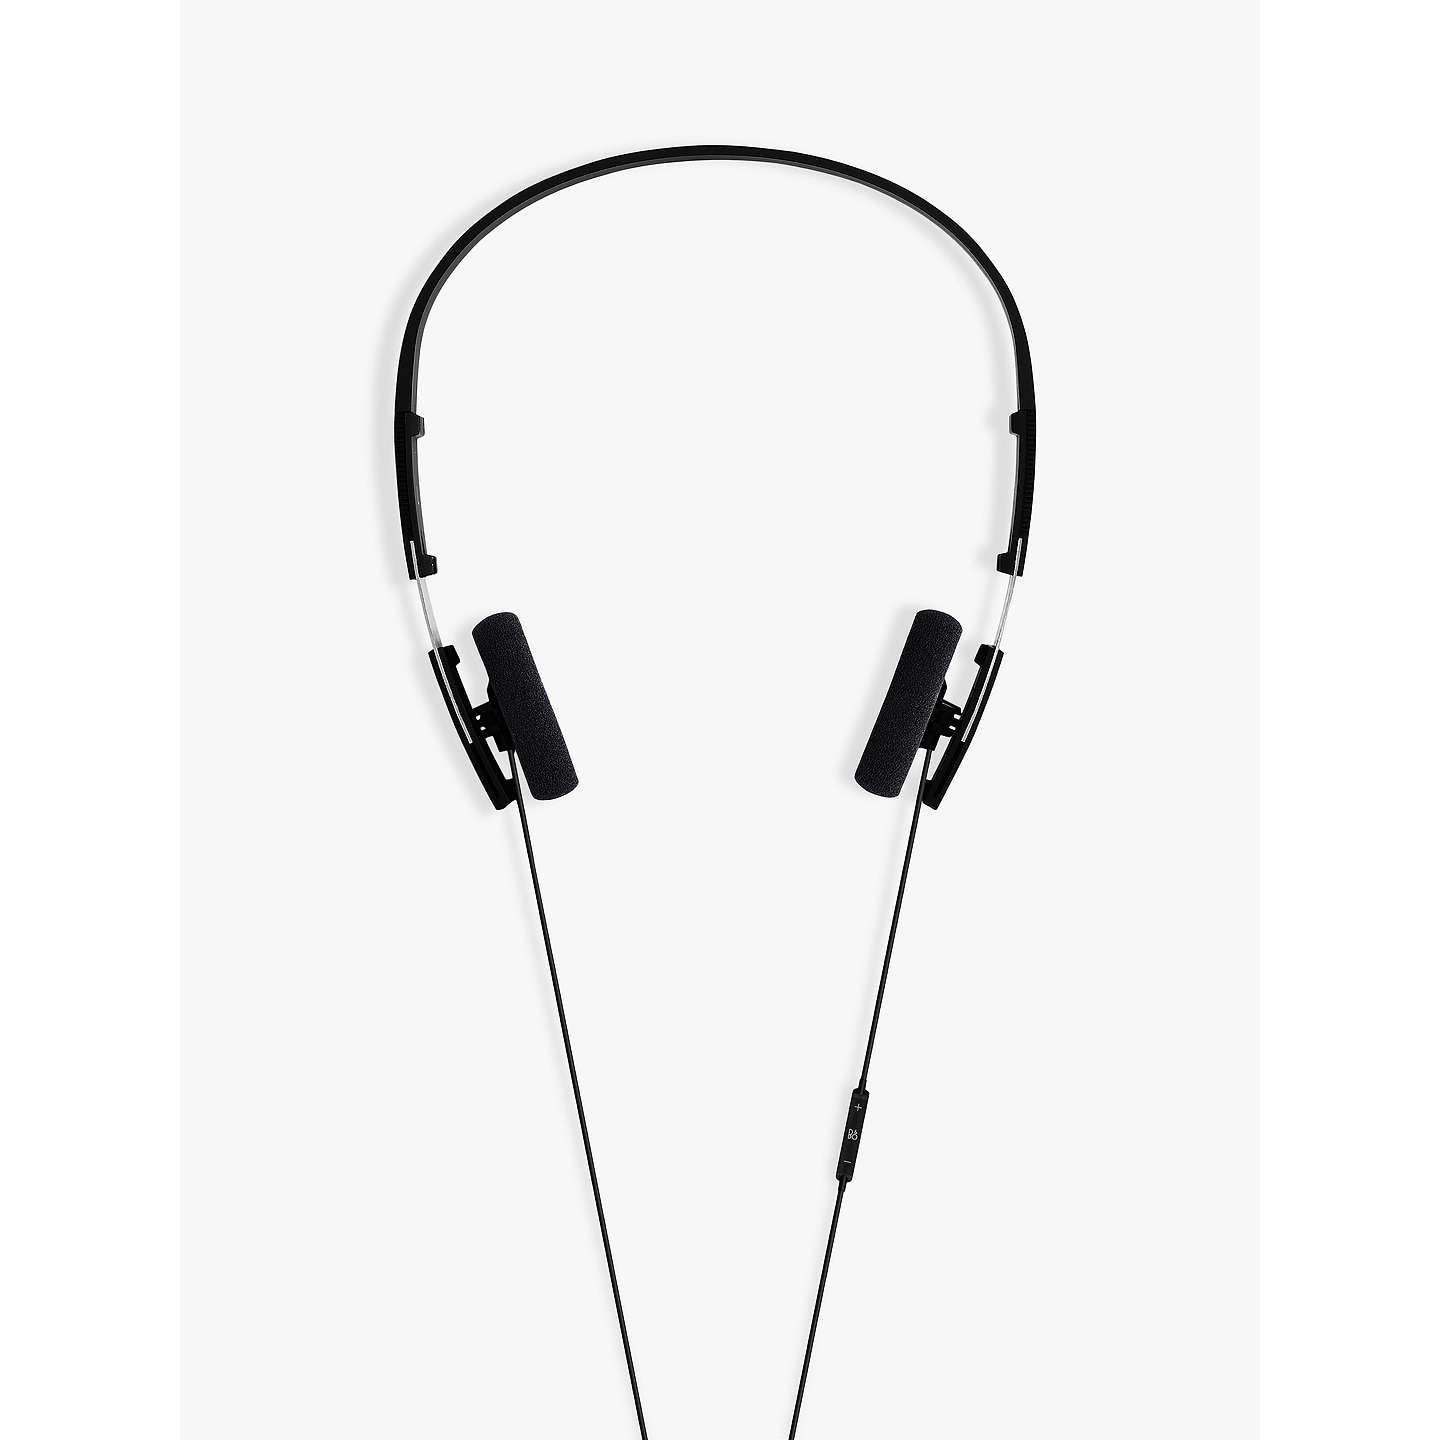 BuyB&O PLAY by Bang & Olufsen Beoplay Form 2i On-Ear Headphones with Mic/Remote, Black Online at johnlewis.com